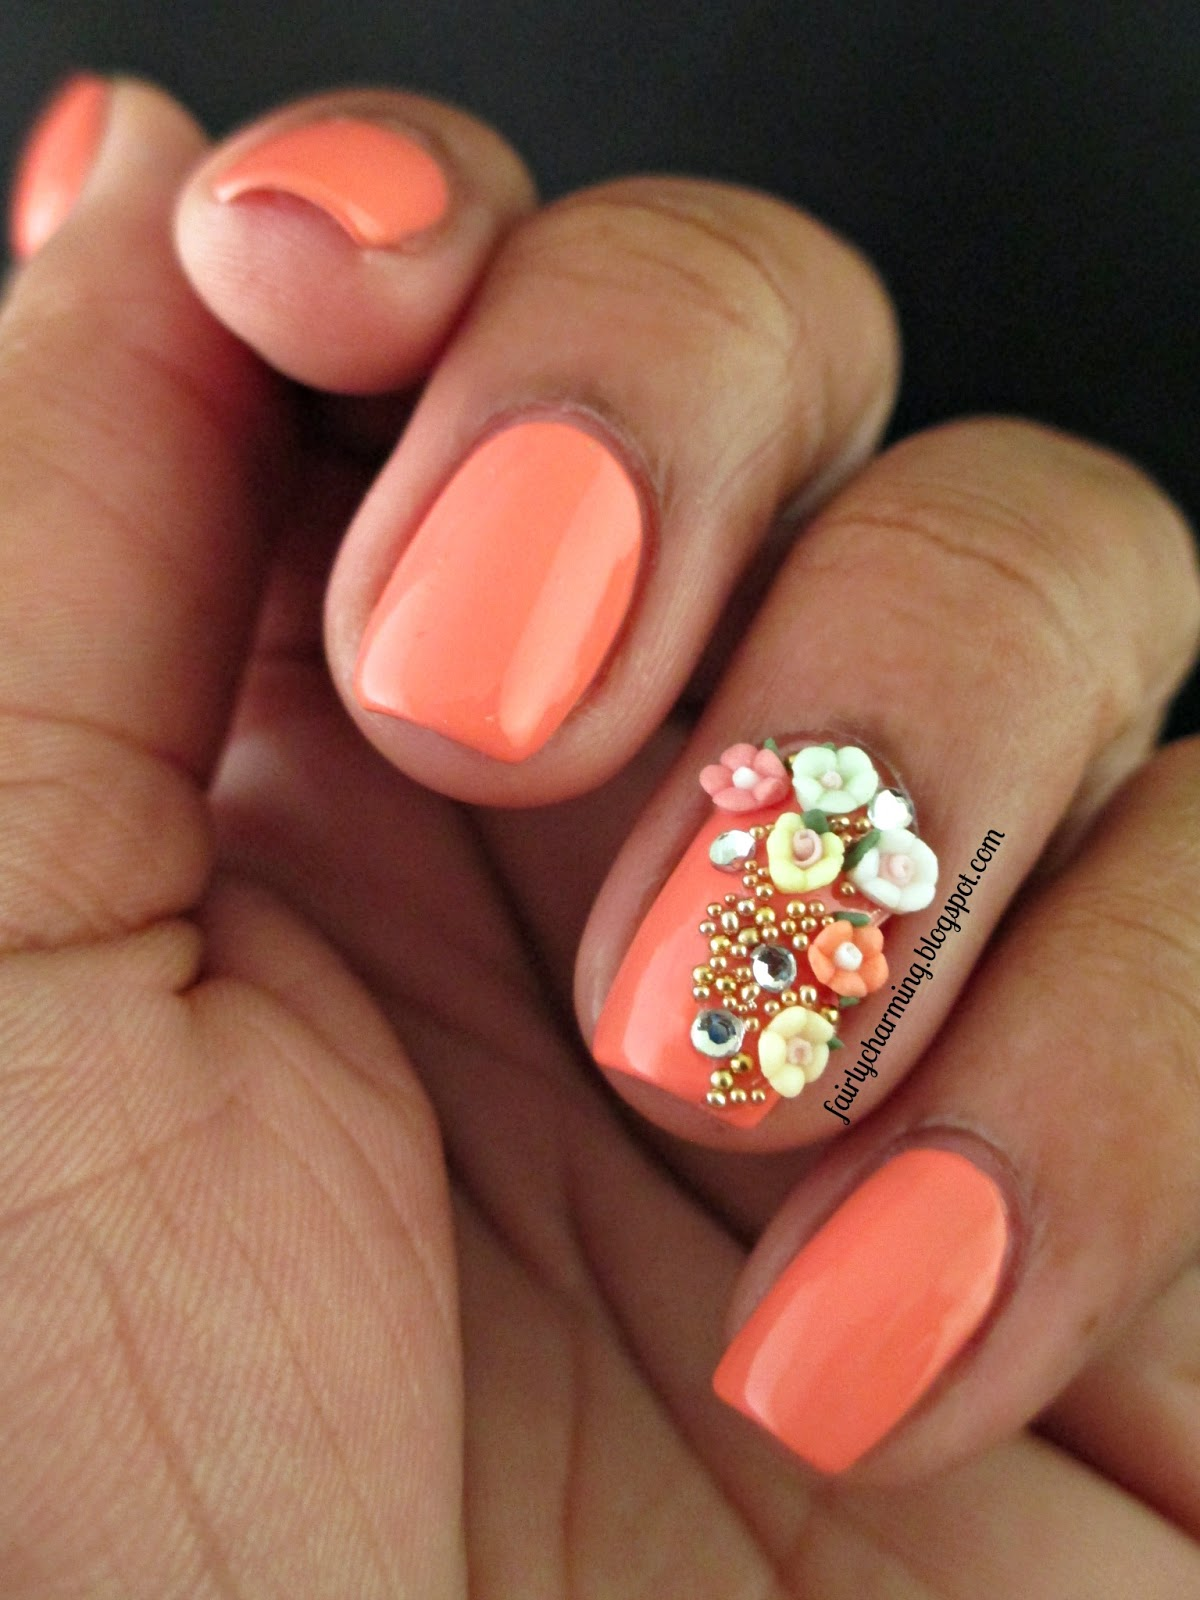 Revlon Apricot Nectar, simple, elegant, spring, cream, creme, flowers, acrylic flowers, beads, studs, soft, easy, coral, orange, nails, nail art, nail design, mani